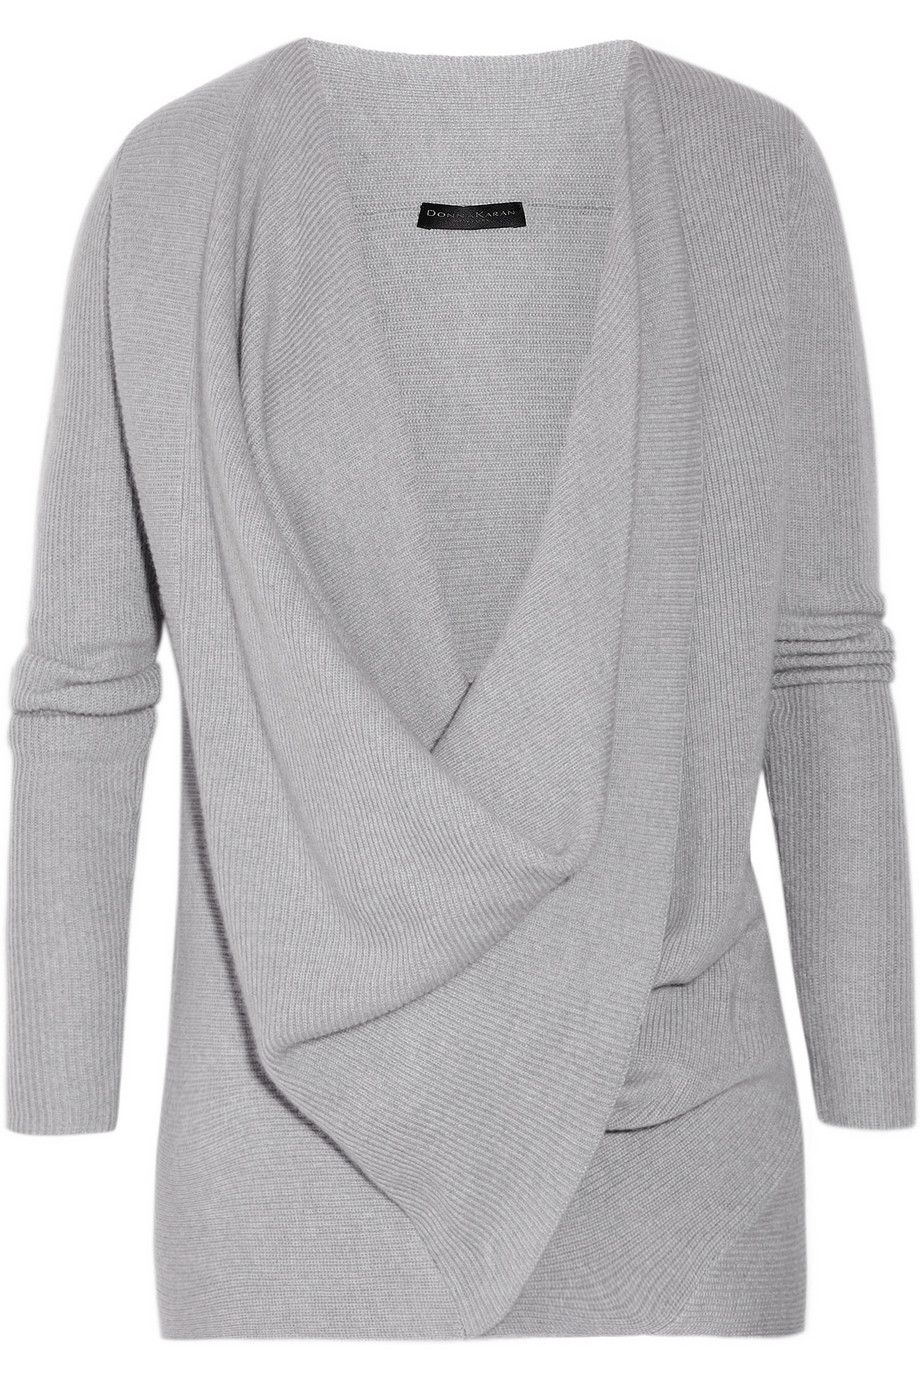 alldressedup products second hand cardigan the fifth drapes sweater collection draped